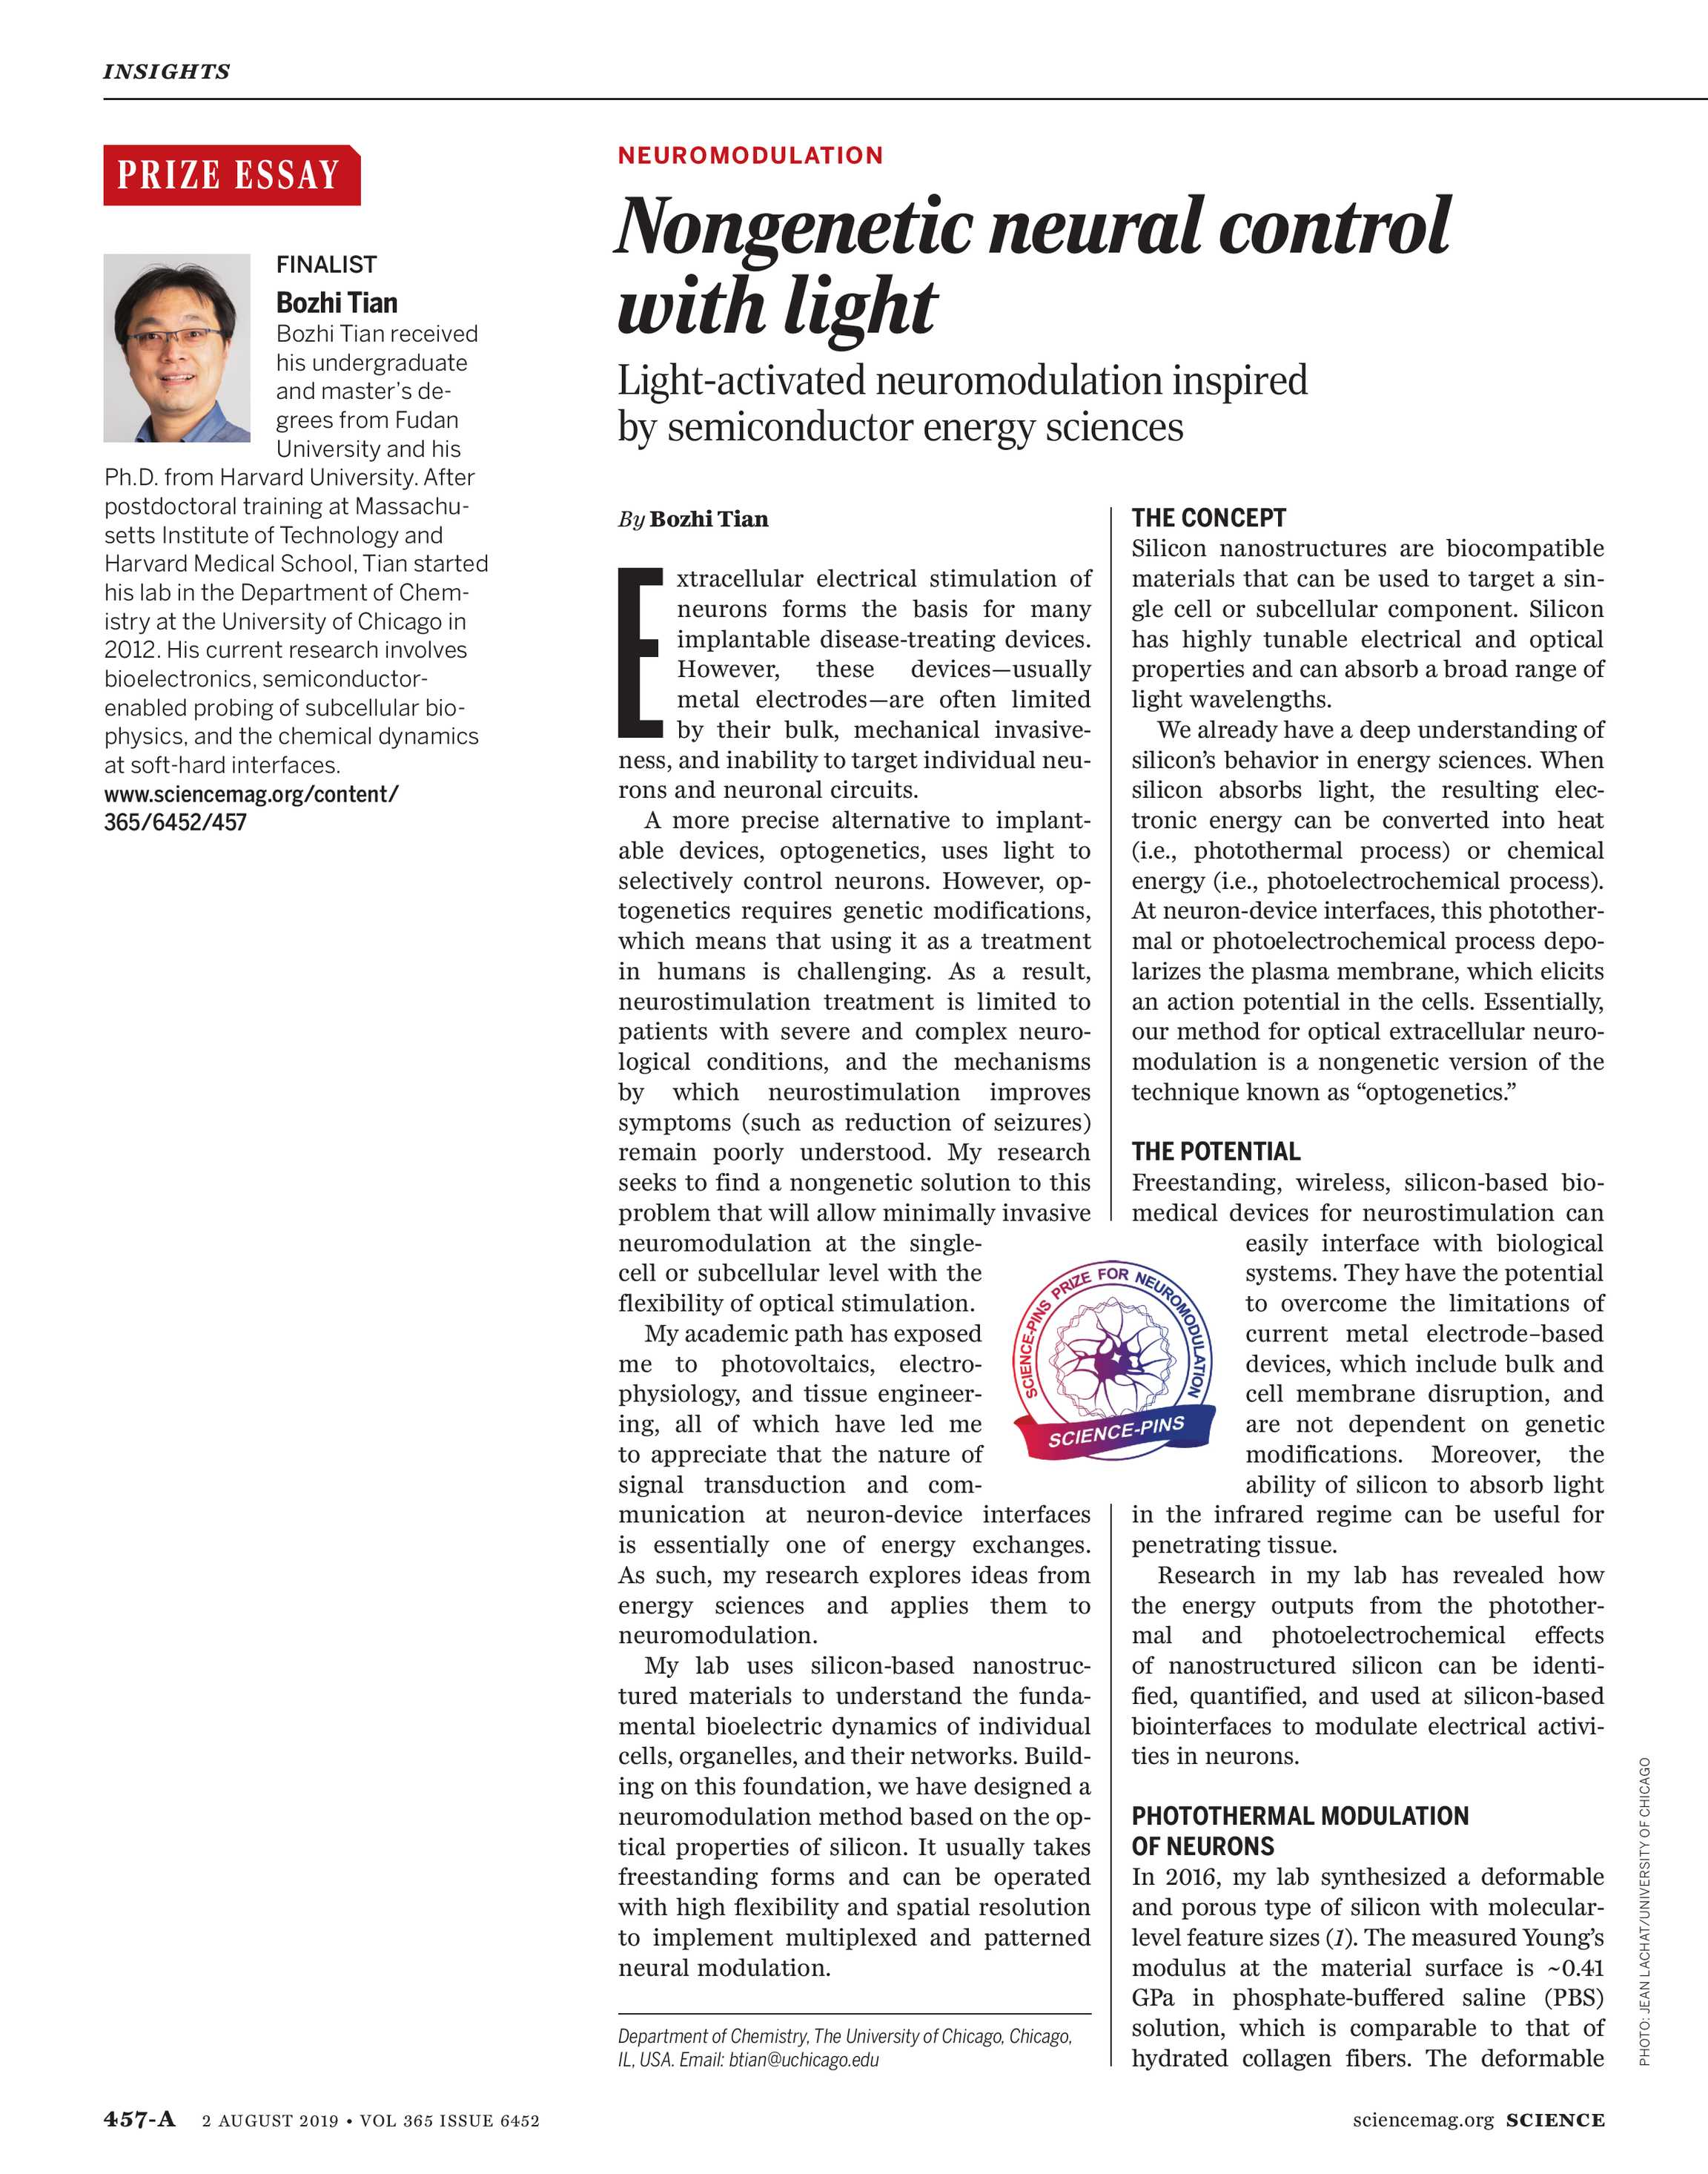 Science Magazine - August 2, 2019 - page 457-A